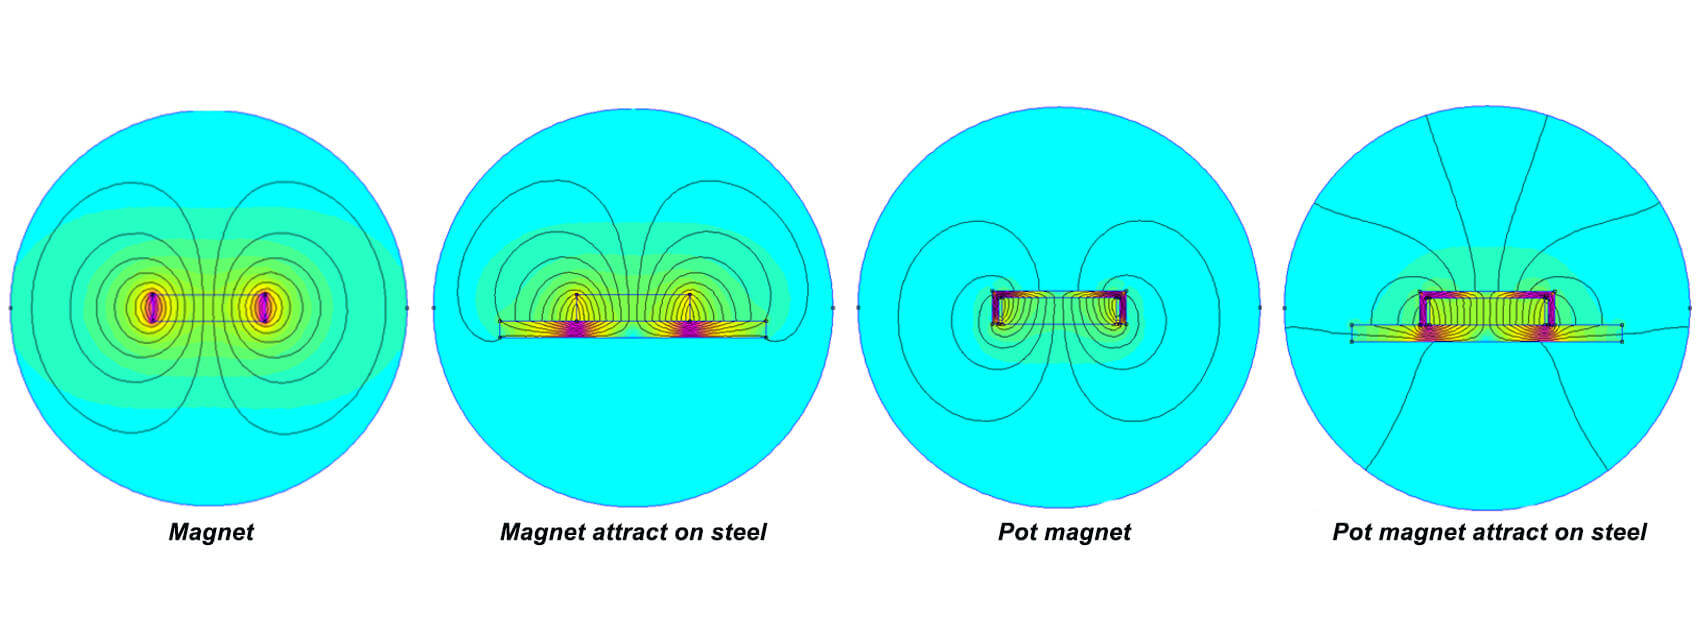 Pot Magnets-Principle